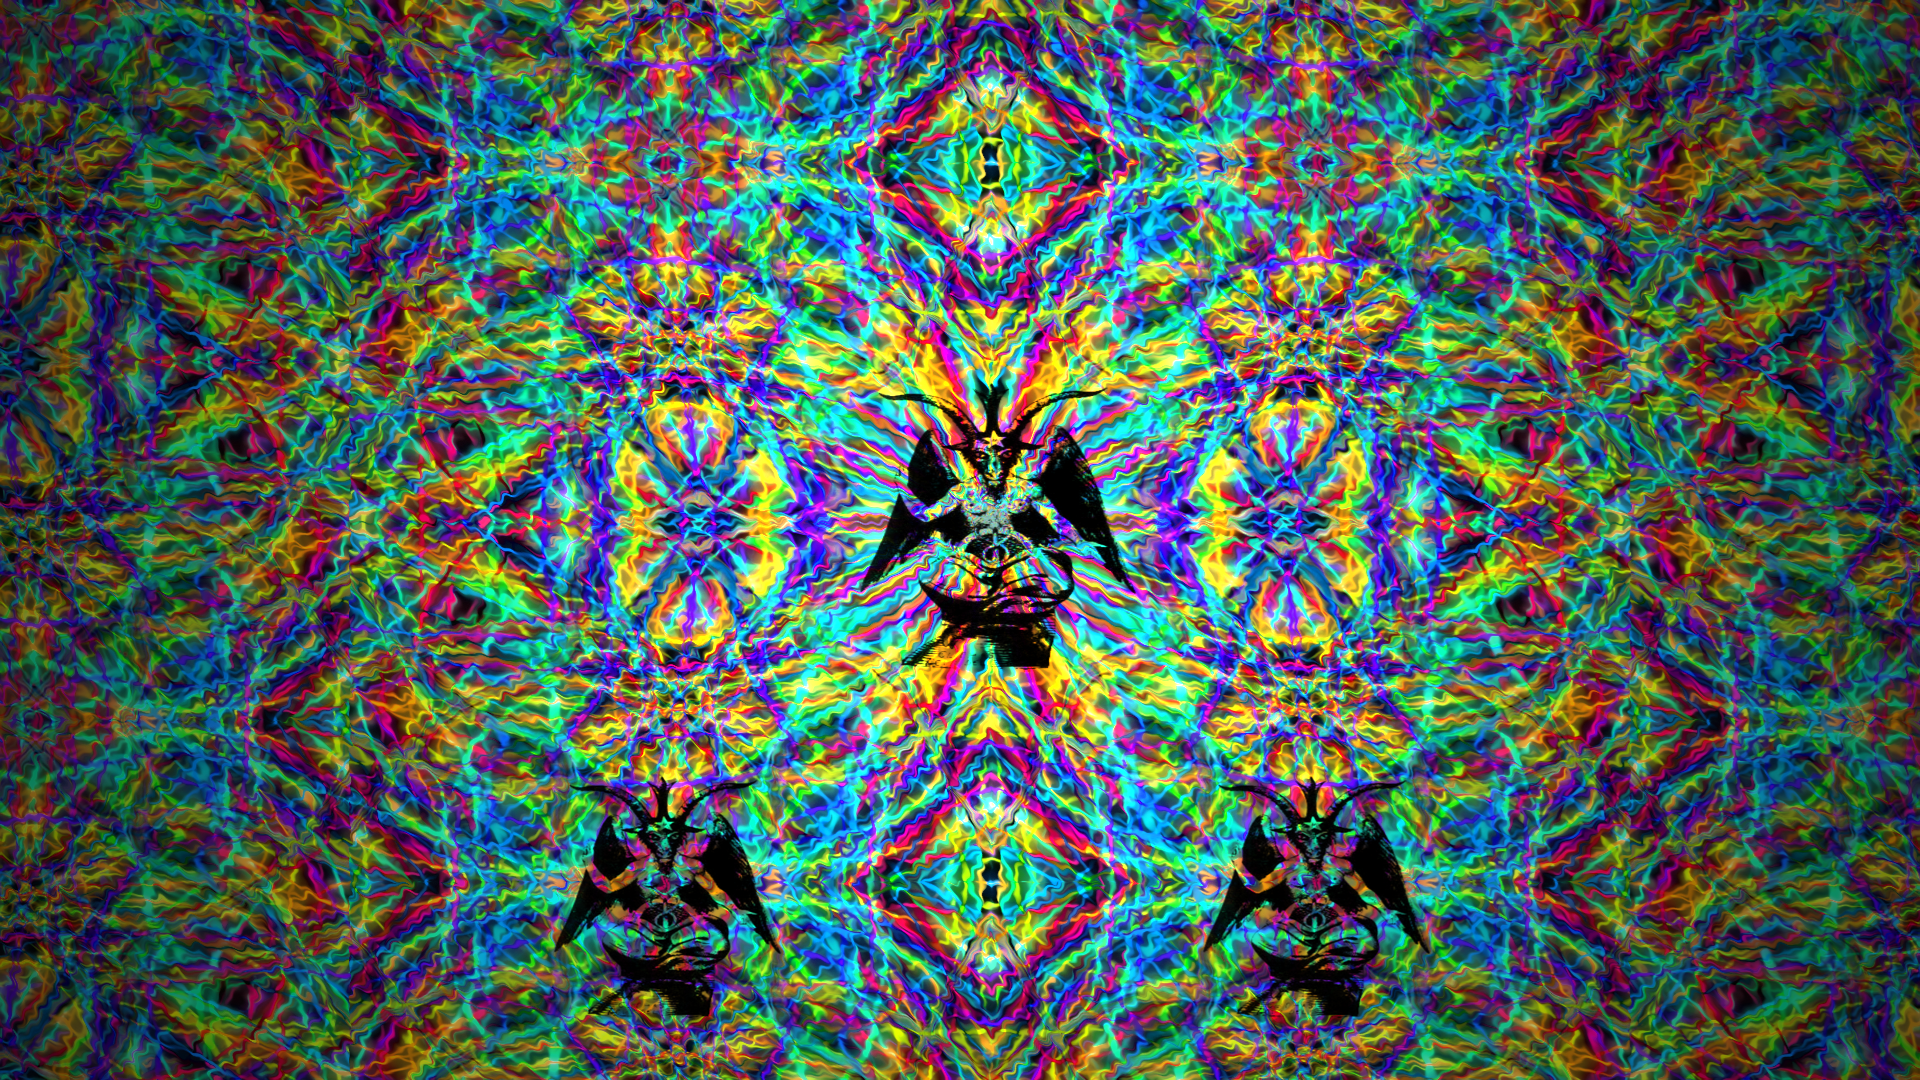 psychedelic hd 1080 wallpapers sexy - photo #28